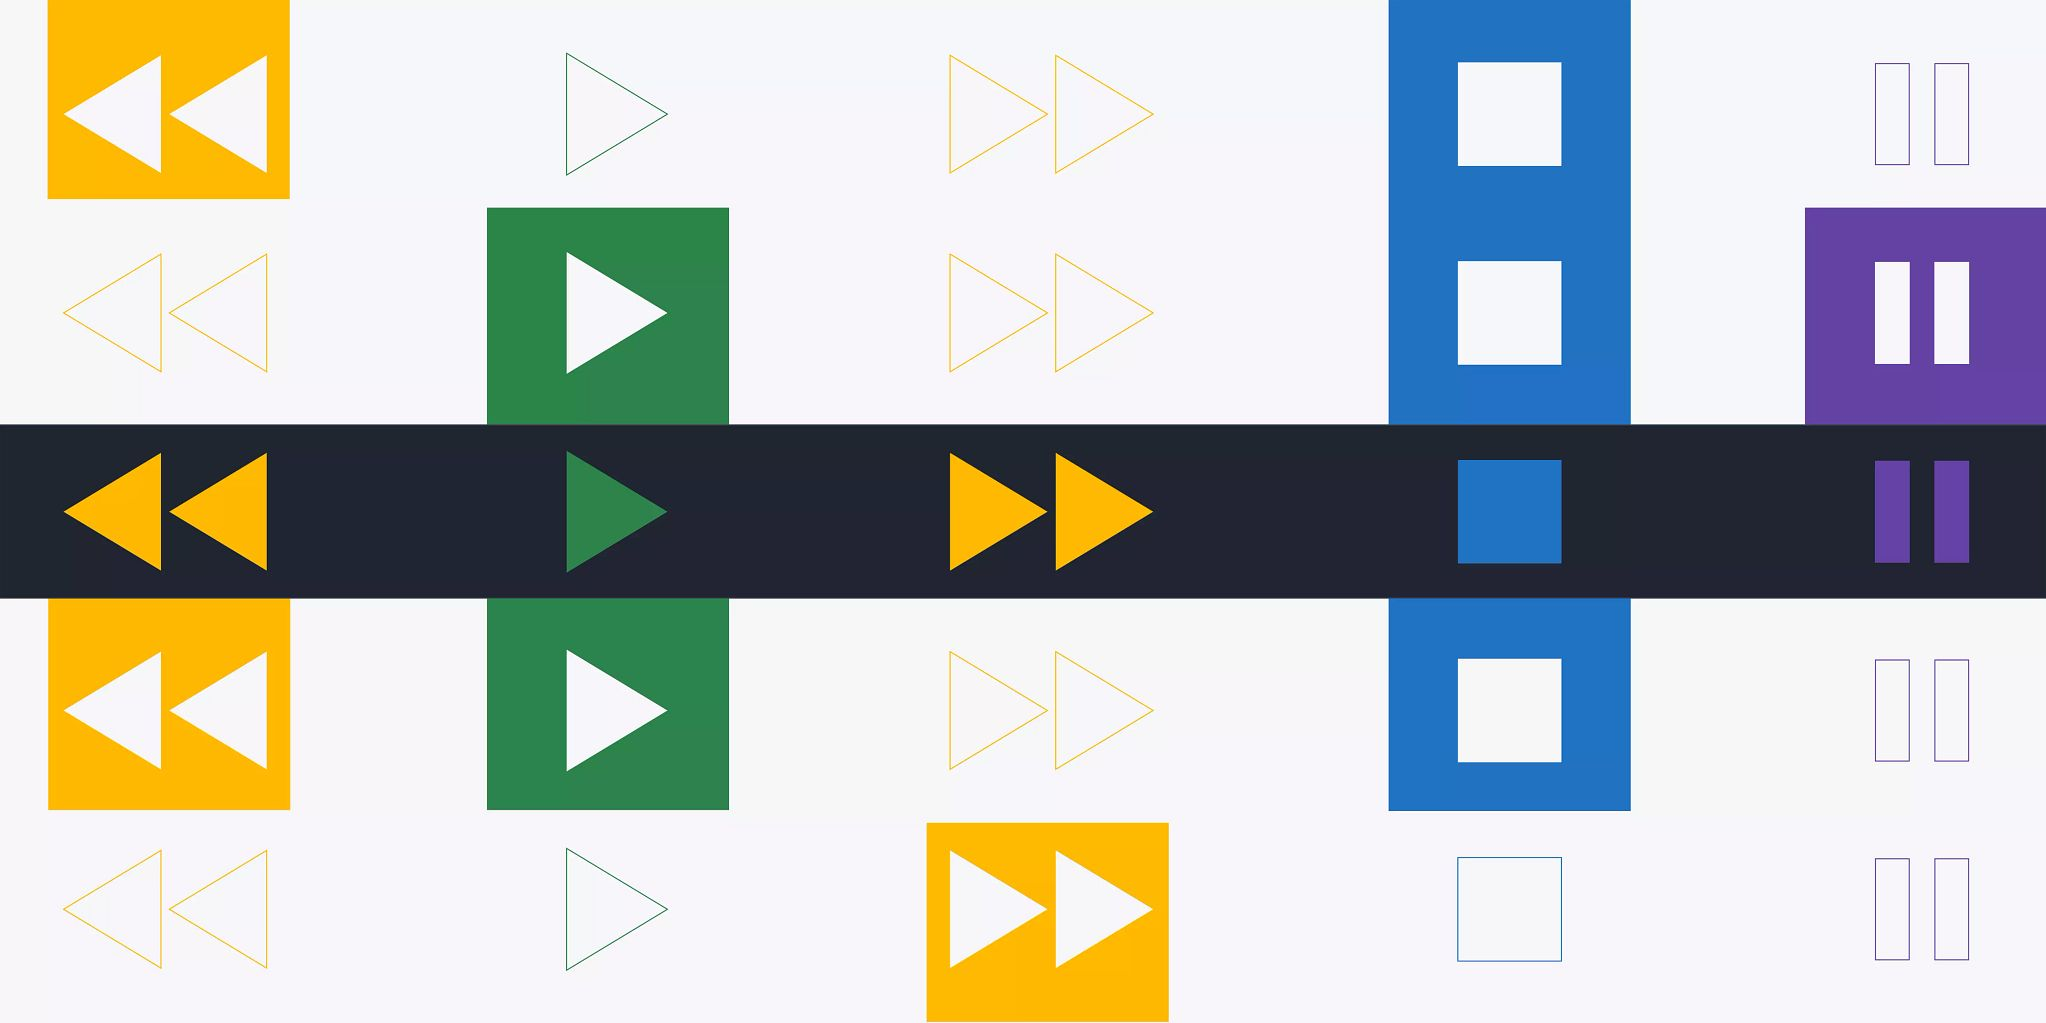 Colorful video graphics representing rewind, play, fast-forward, stop, and pause.